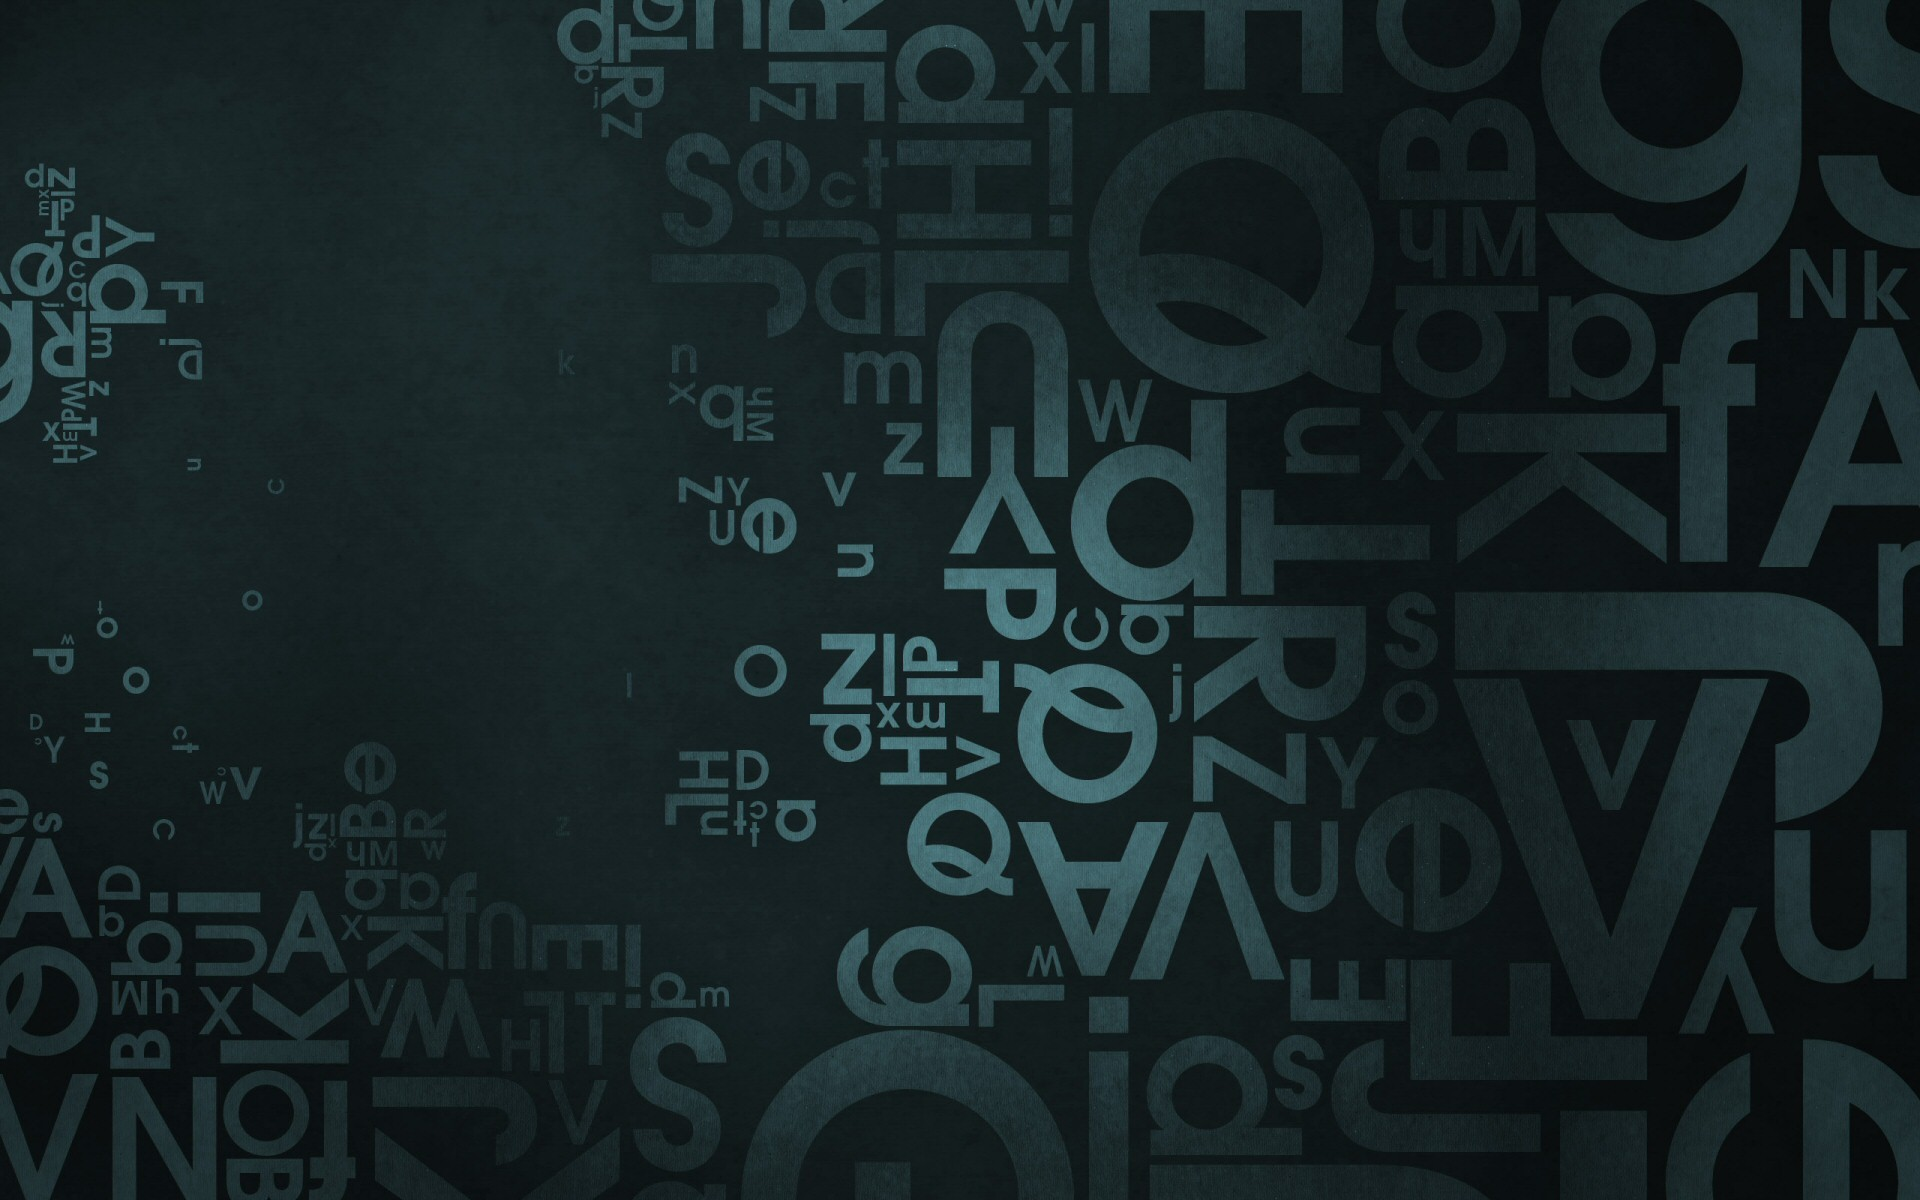 Hd Wallpapers Fa Word: 10 Fantastic HD Letters Wallpapers